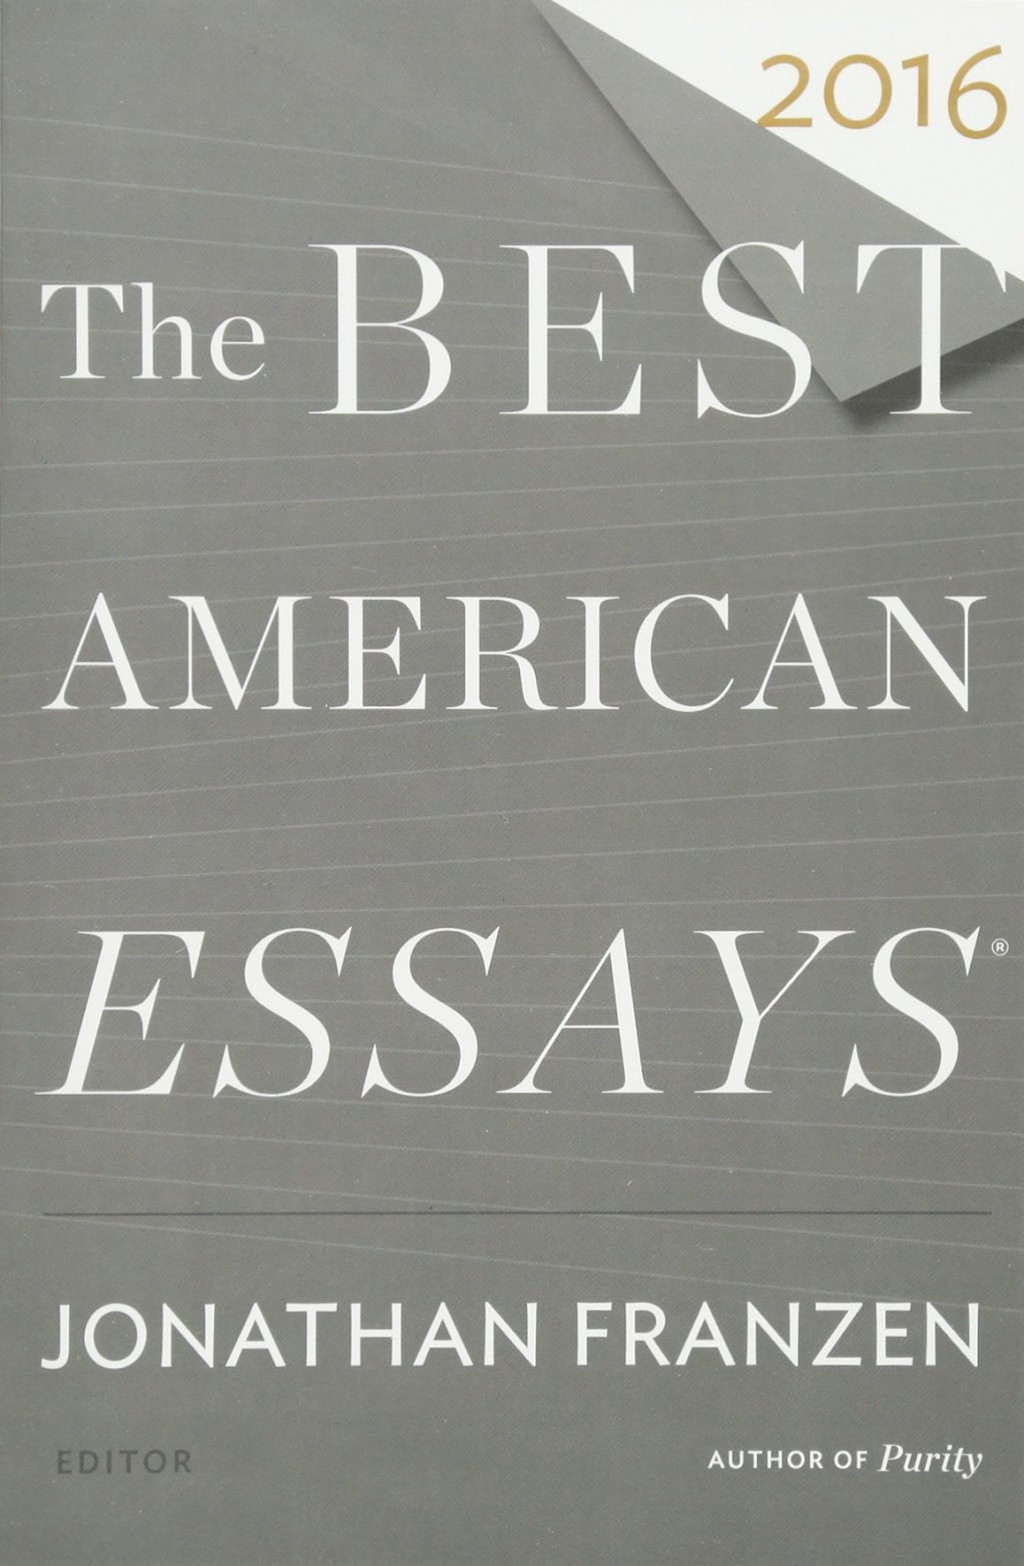 001 71a6bhsgsdl Essay Example Best American Essays Unique 2016 Pdf Download The Sparknotes Large